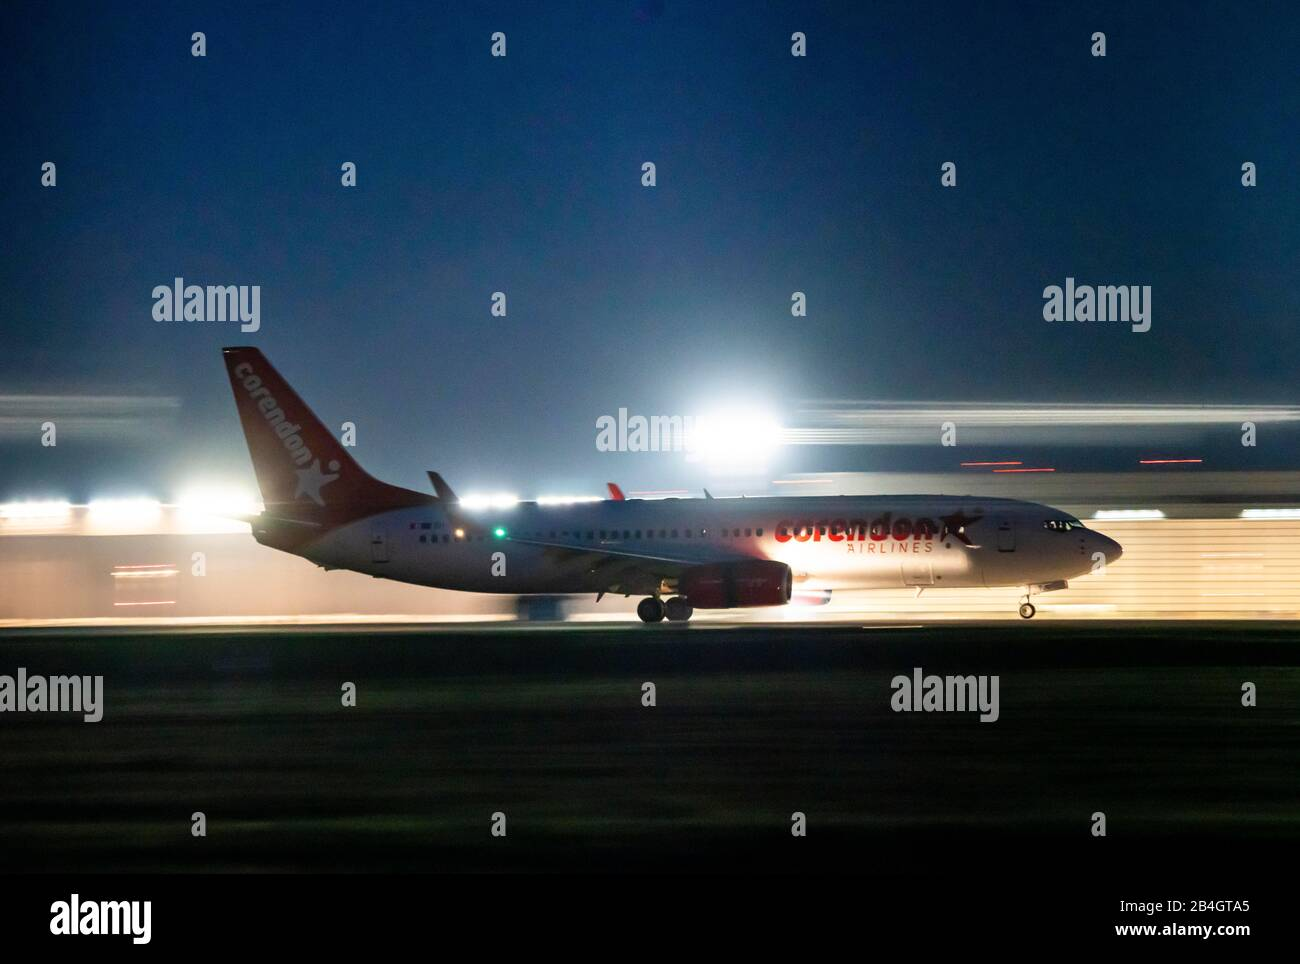 DŸsseldorf International Airport, DUS, aircraft at take-off, Corendon Airlines, Stock Photo